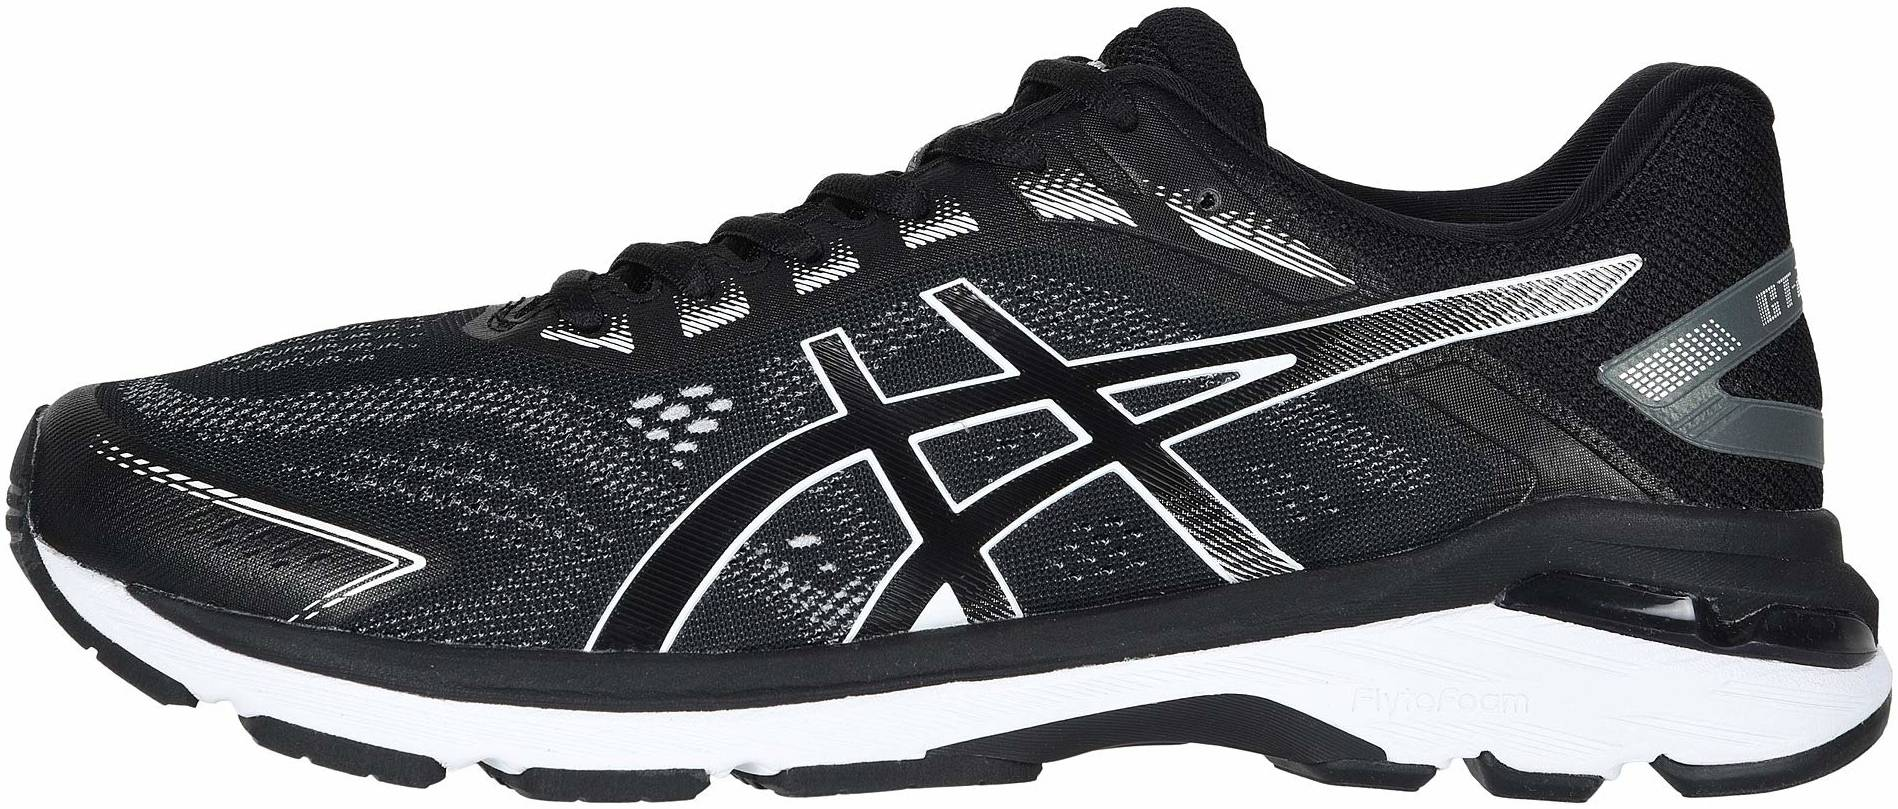 Only £85 + Review of Asics GT 2000 7